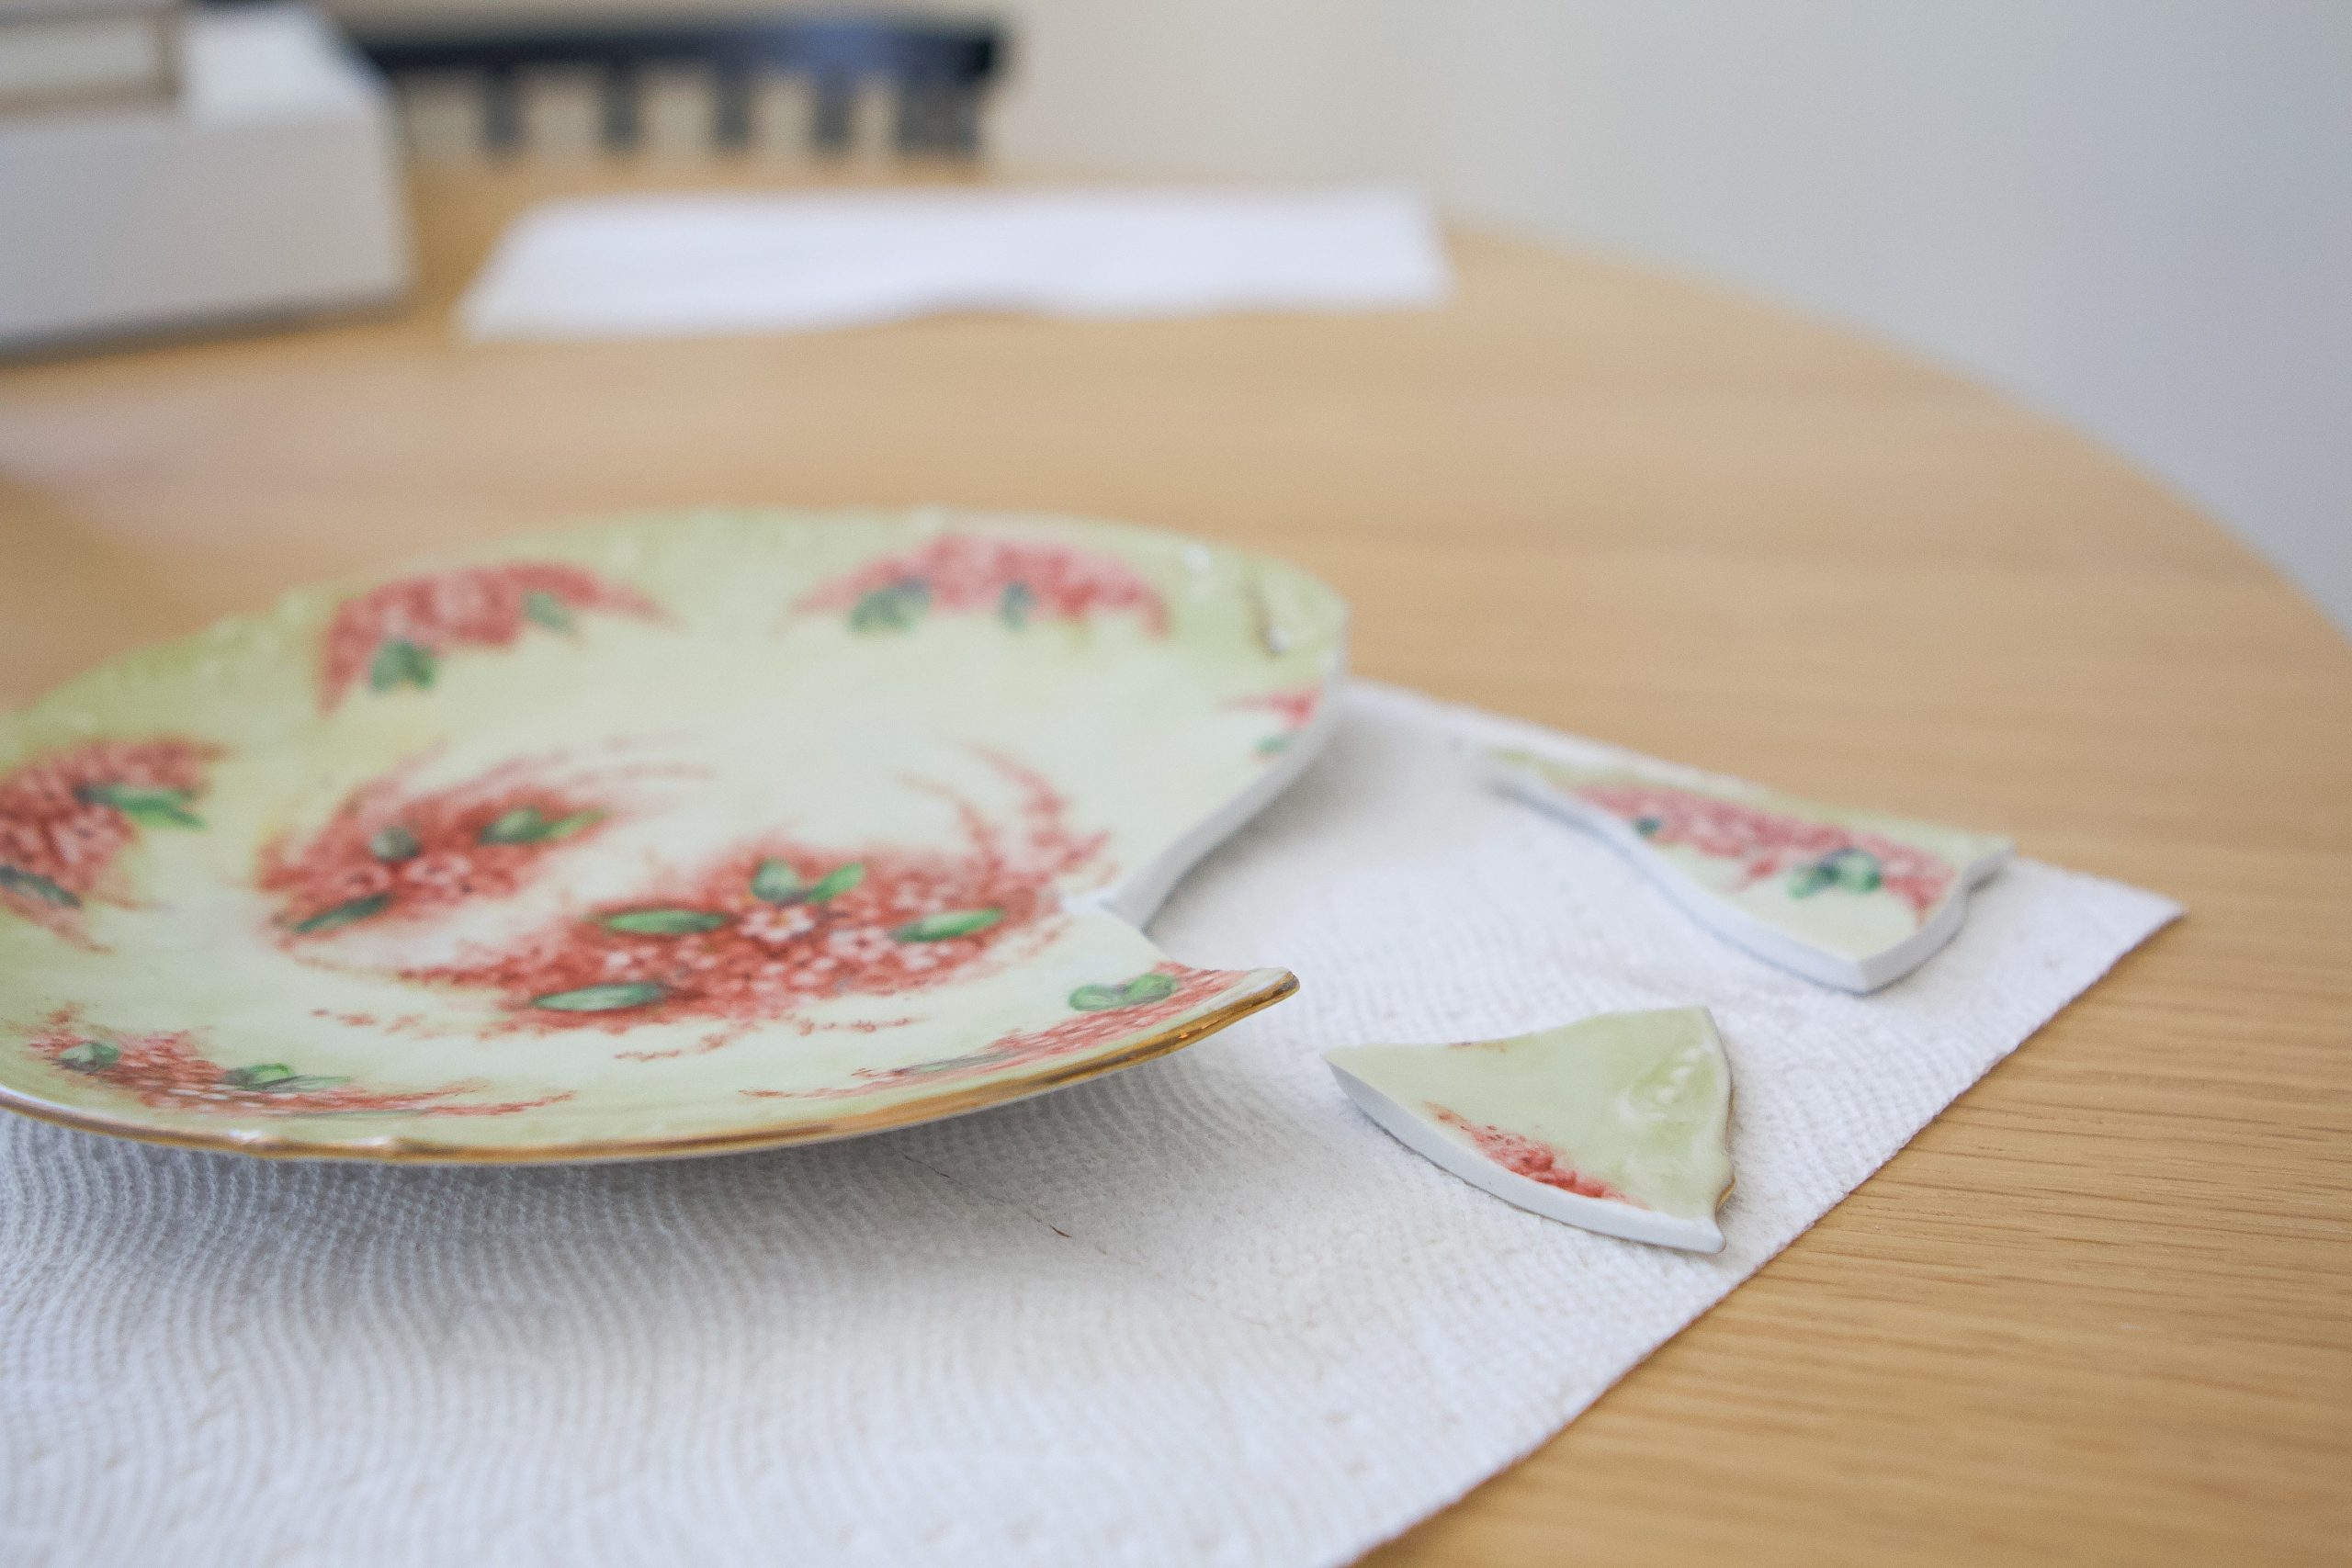 How to fix a broken plate with super glue